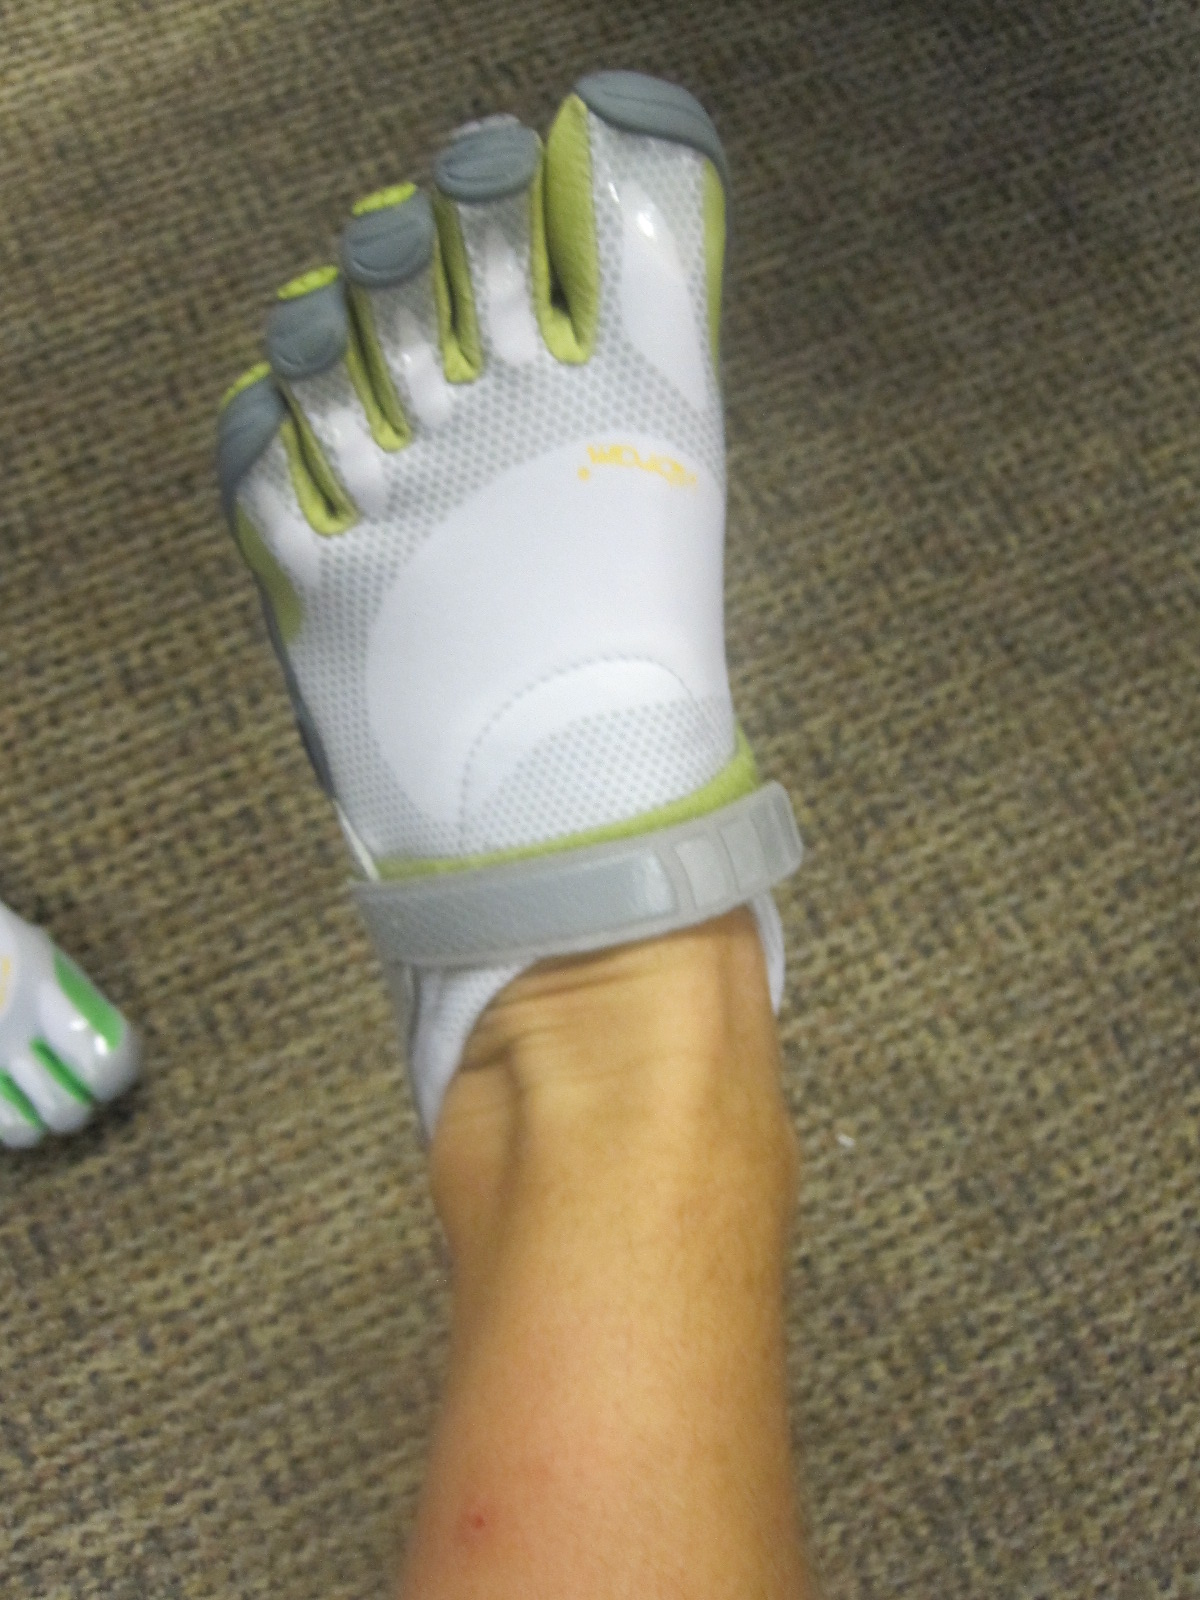 Making webbed feet cool….one shoe at a